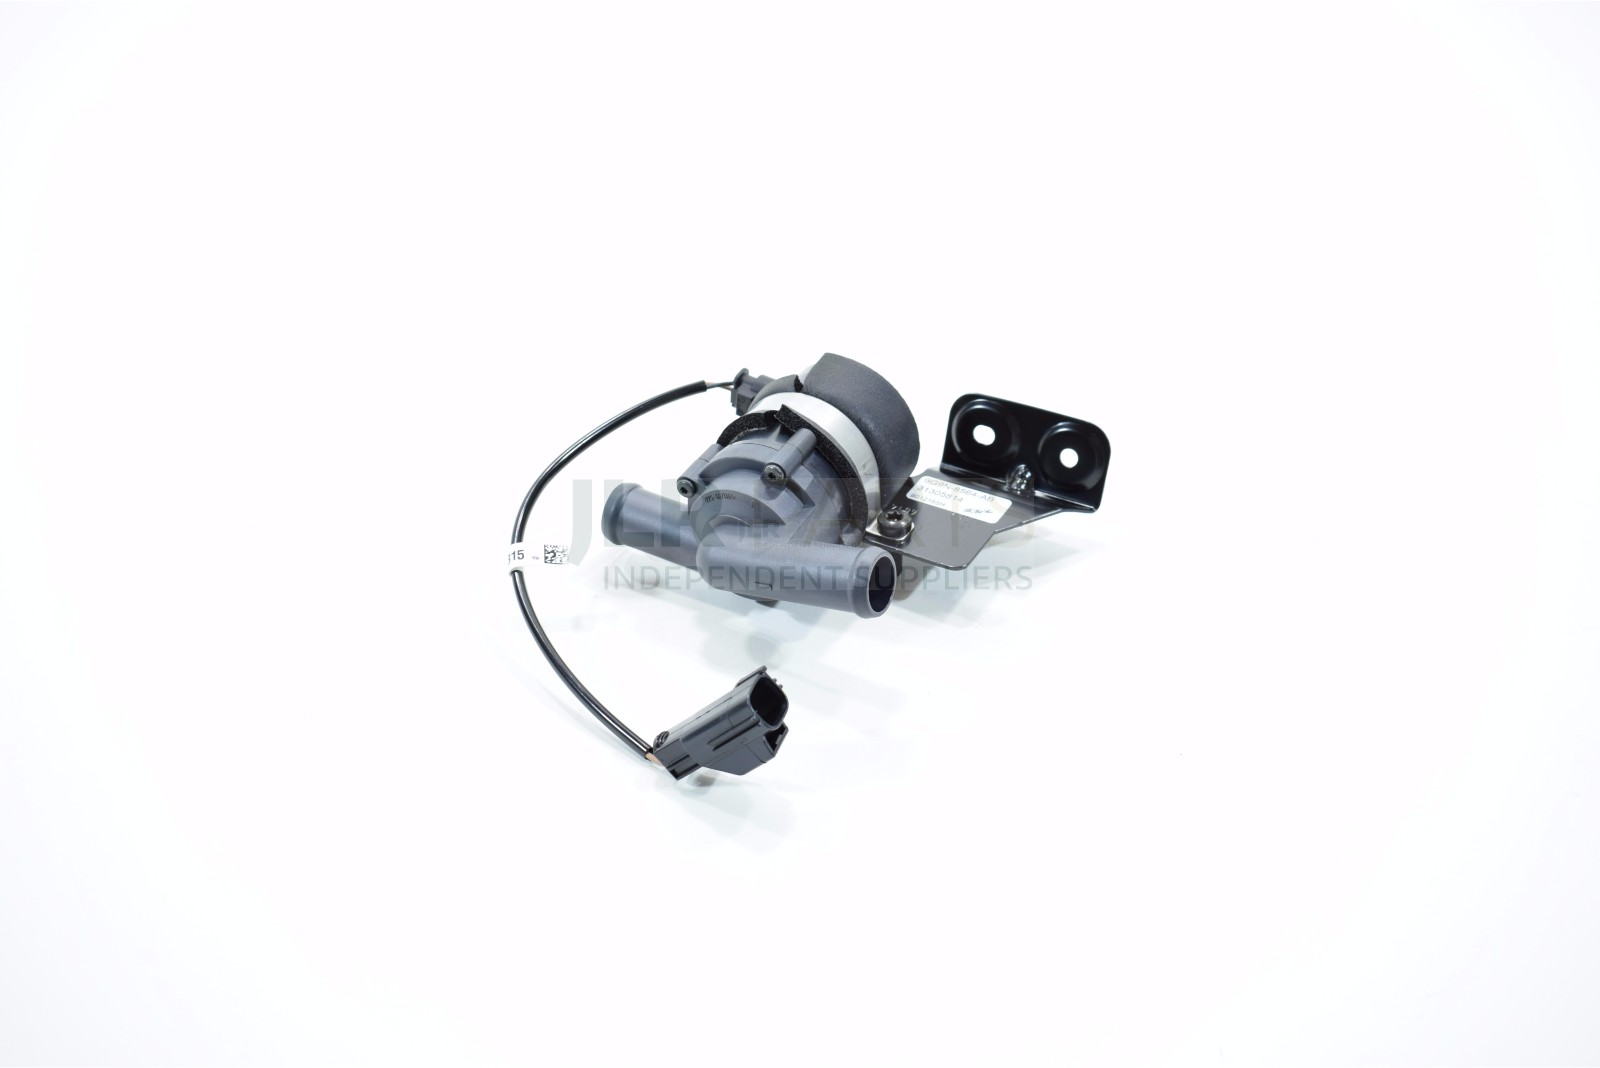 Water Pump Lr064320 additionally Maserati Levante Suv Official Pictures additionally Verschleissanzeiger Hinterachse also Front Shock Absorber 1 furthermore Hoogte Wastafel Badkamer. on jaguar f pace